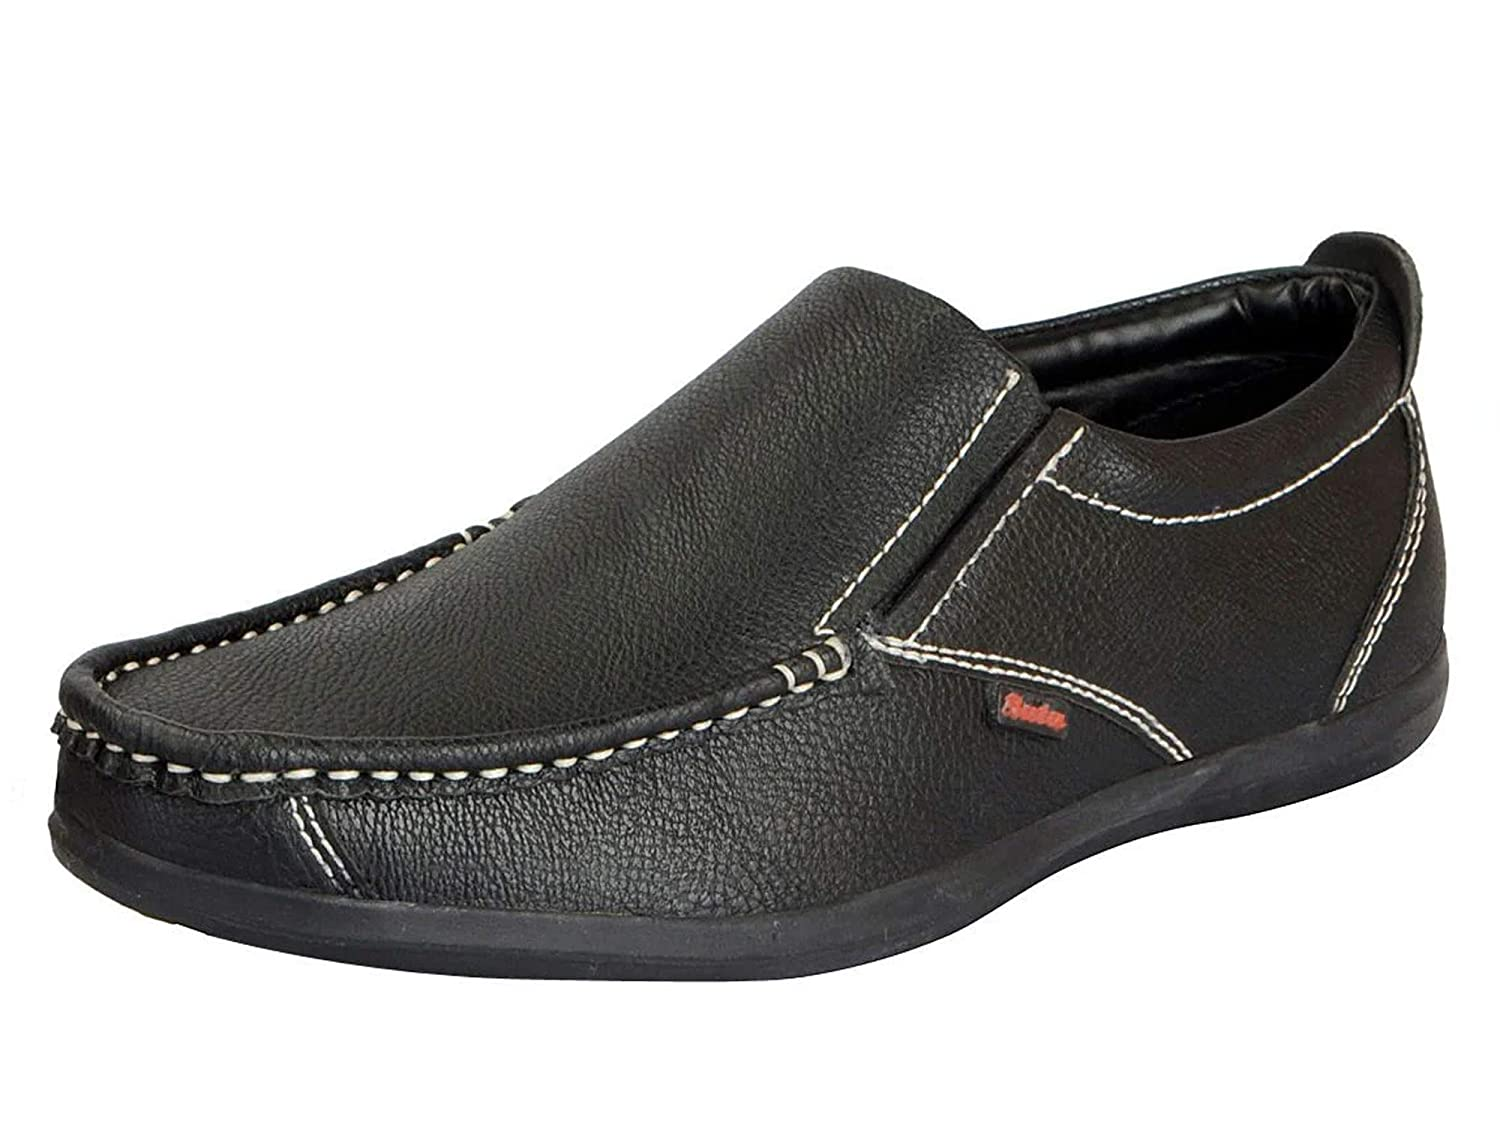 Buy BATA Men's Loafers Casual Shoes at